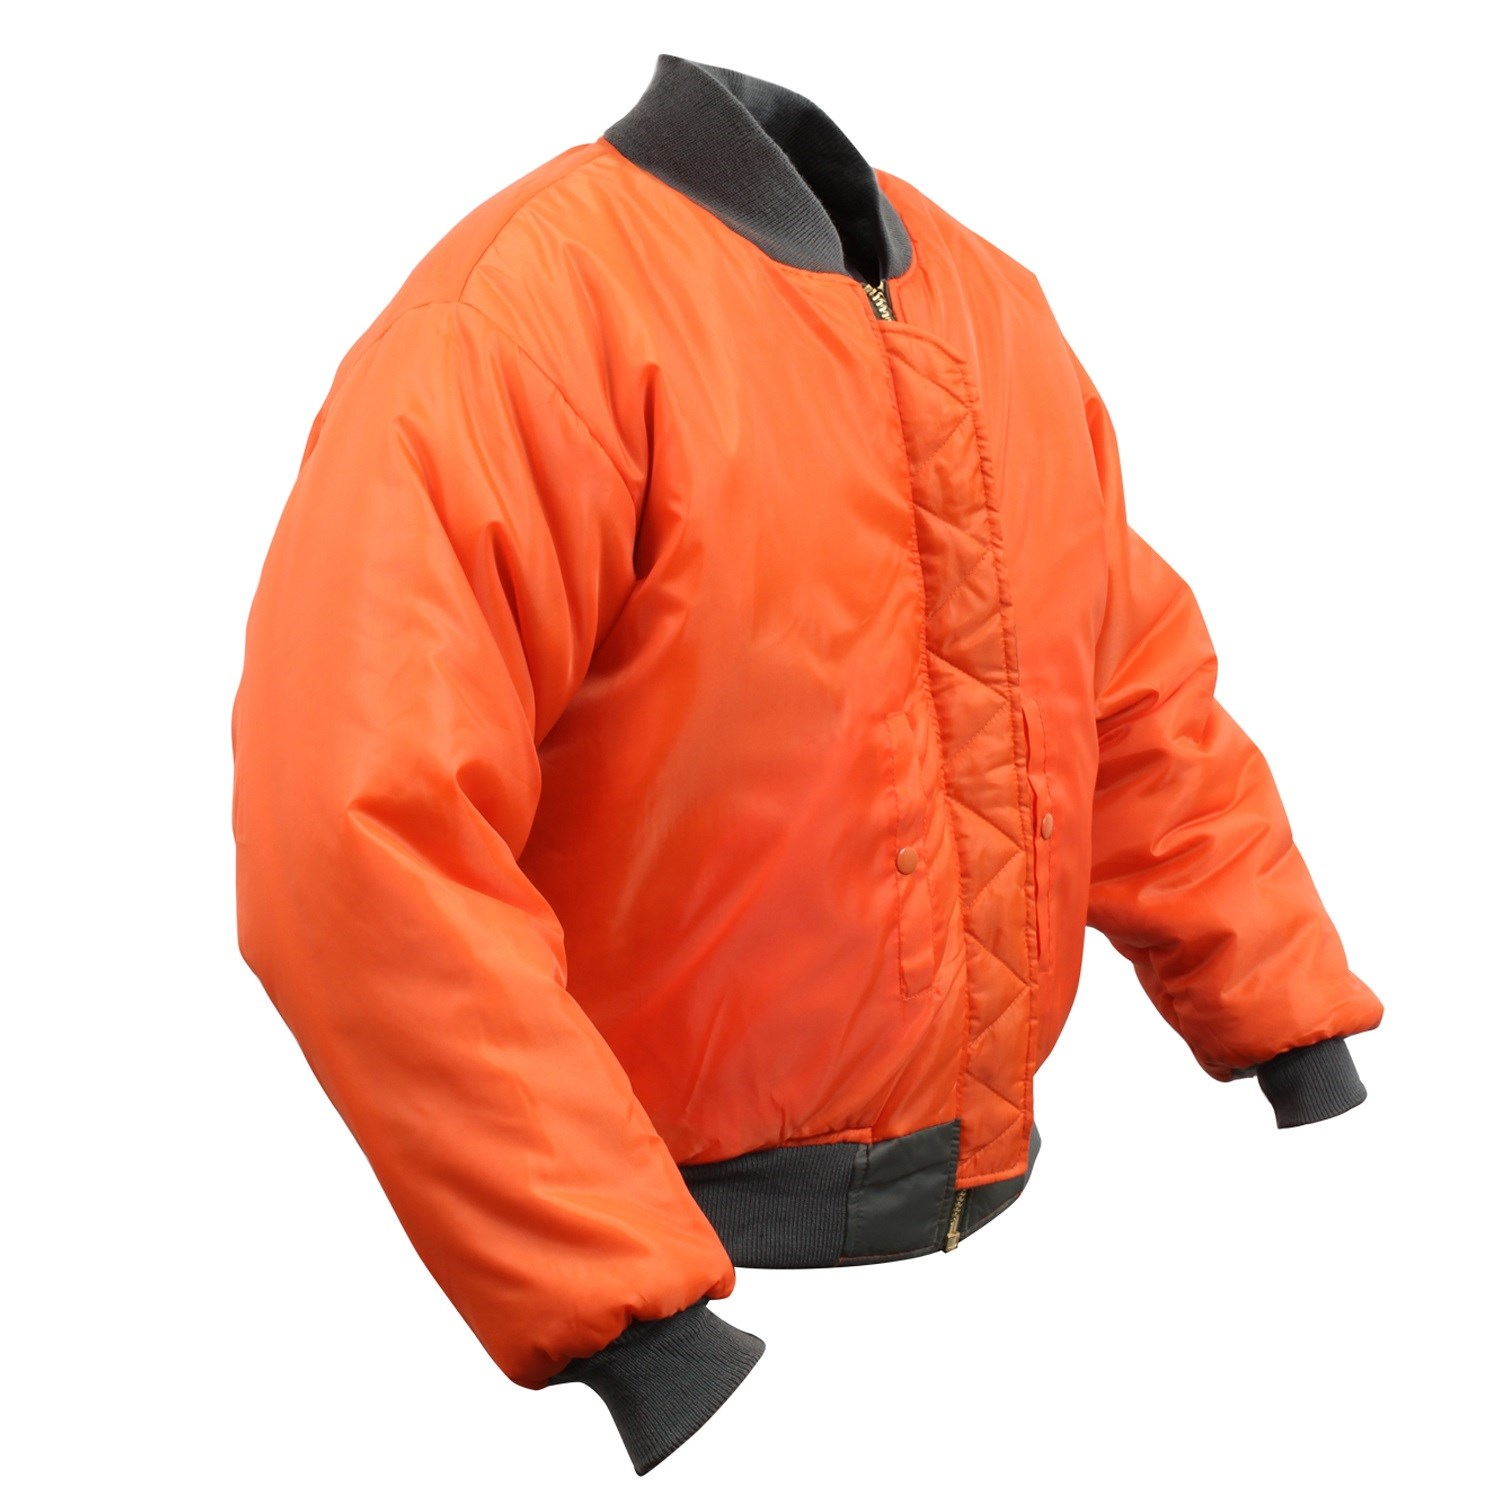 Jacket ULTRA FORCE MA1 FLIGHT COYOTE ROTHCO 7544 L-11